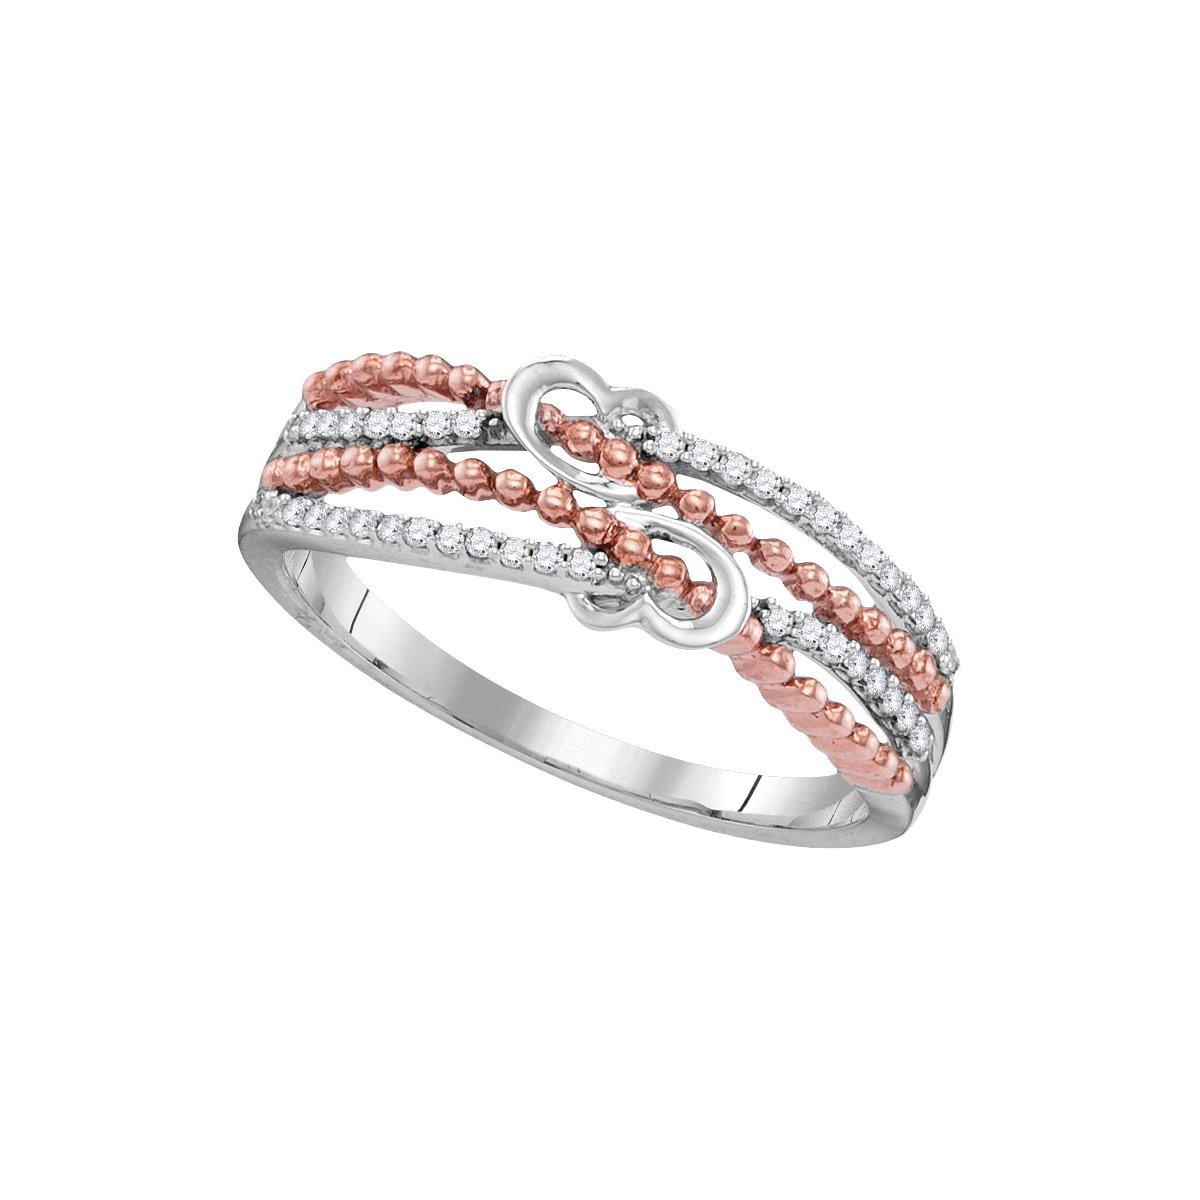 10kt White Gold Womens Round Diamond Heart Love Roped 2-tone Rose Band Ring 1/8 Cttw (I1-I2 clarity; I-J color)